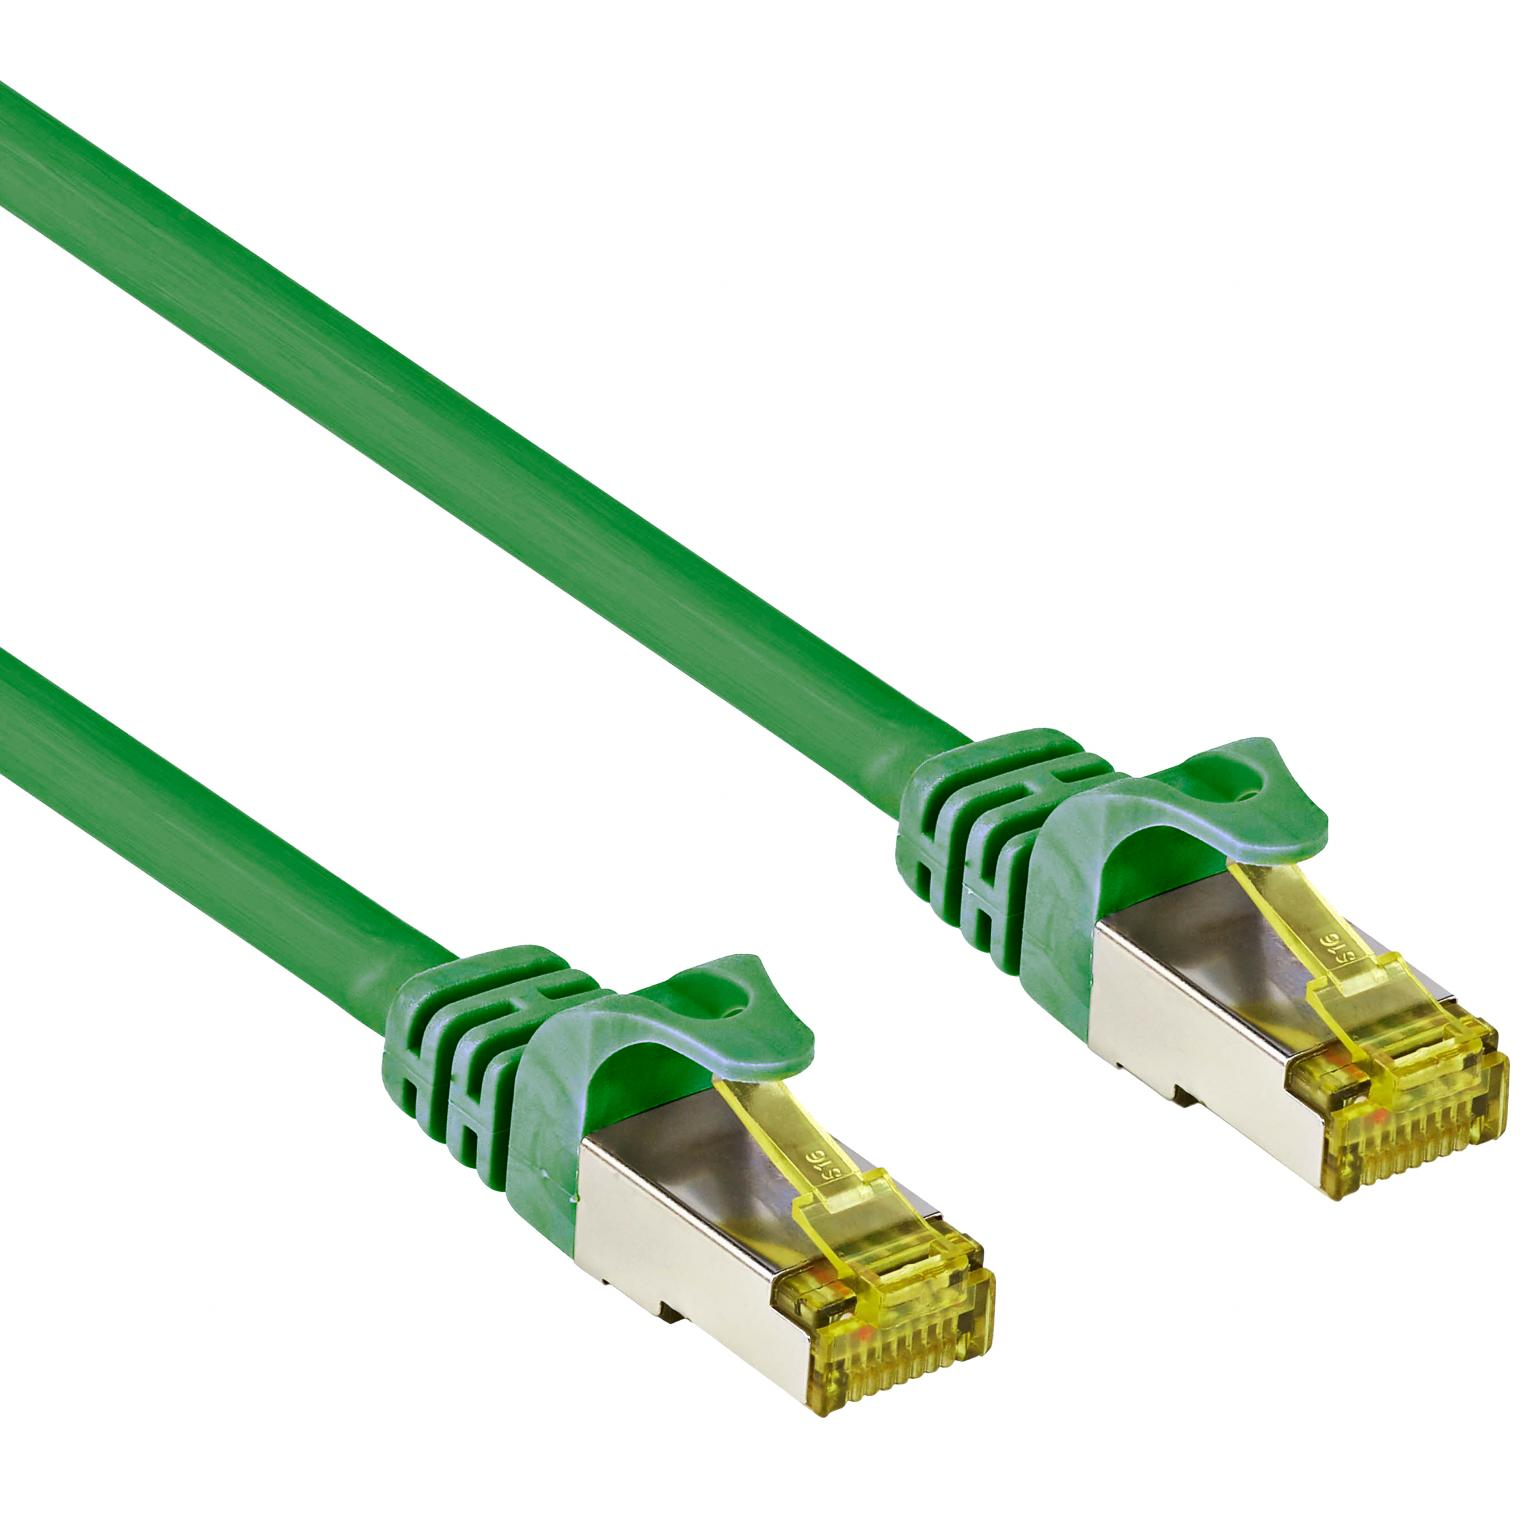 S/FTP-kabel CAT7 - 2 meter